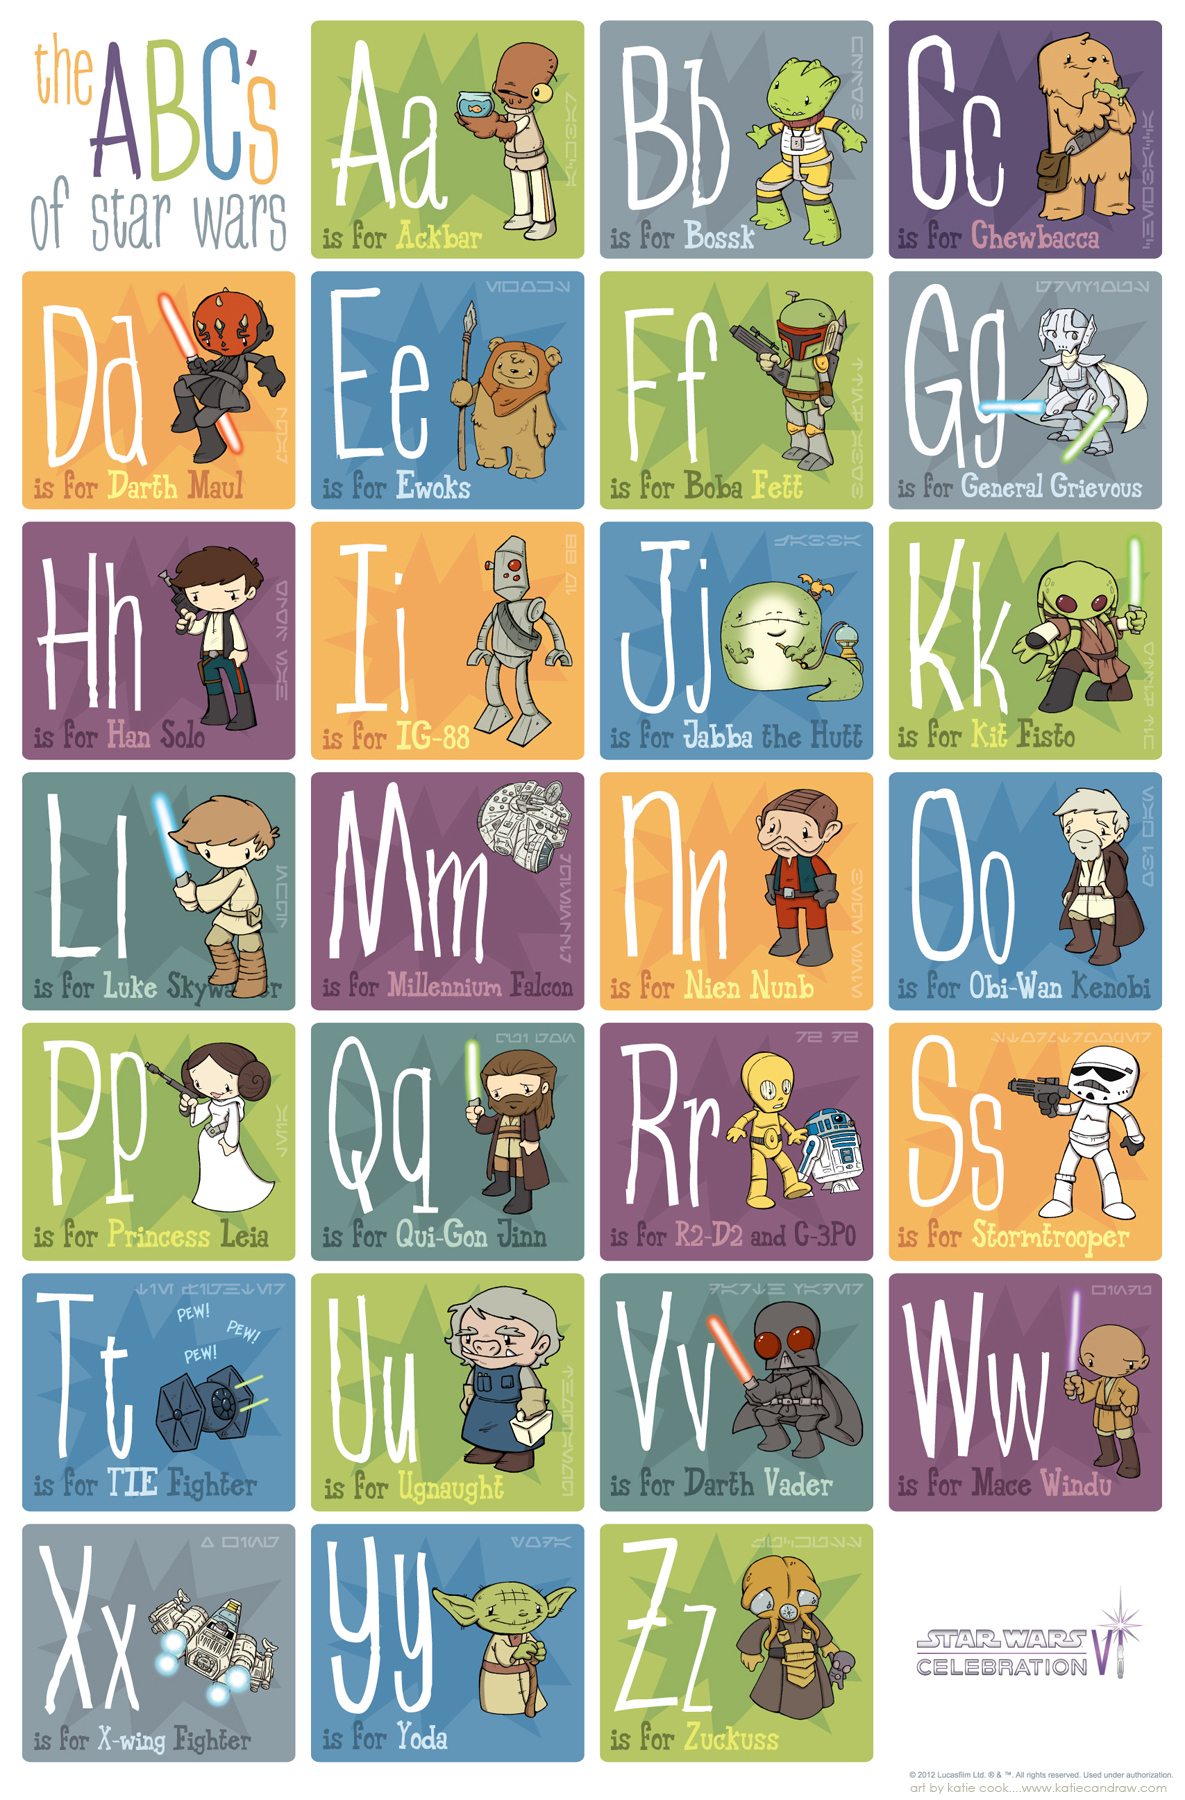 Favorit katiecandraw.com: katie can draw the star wars alphabet MX88